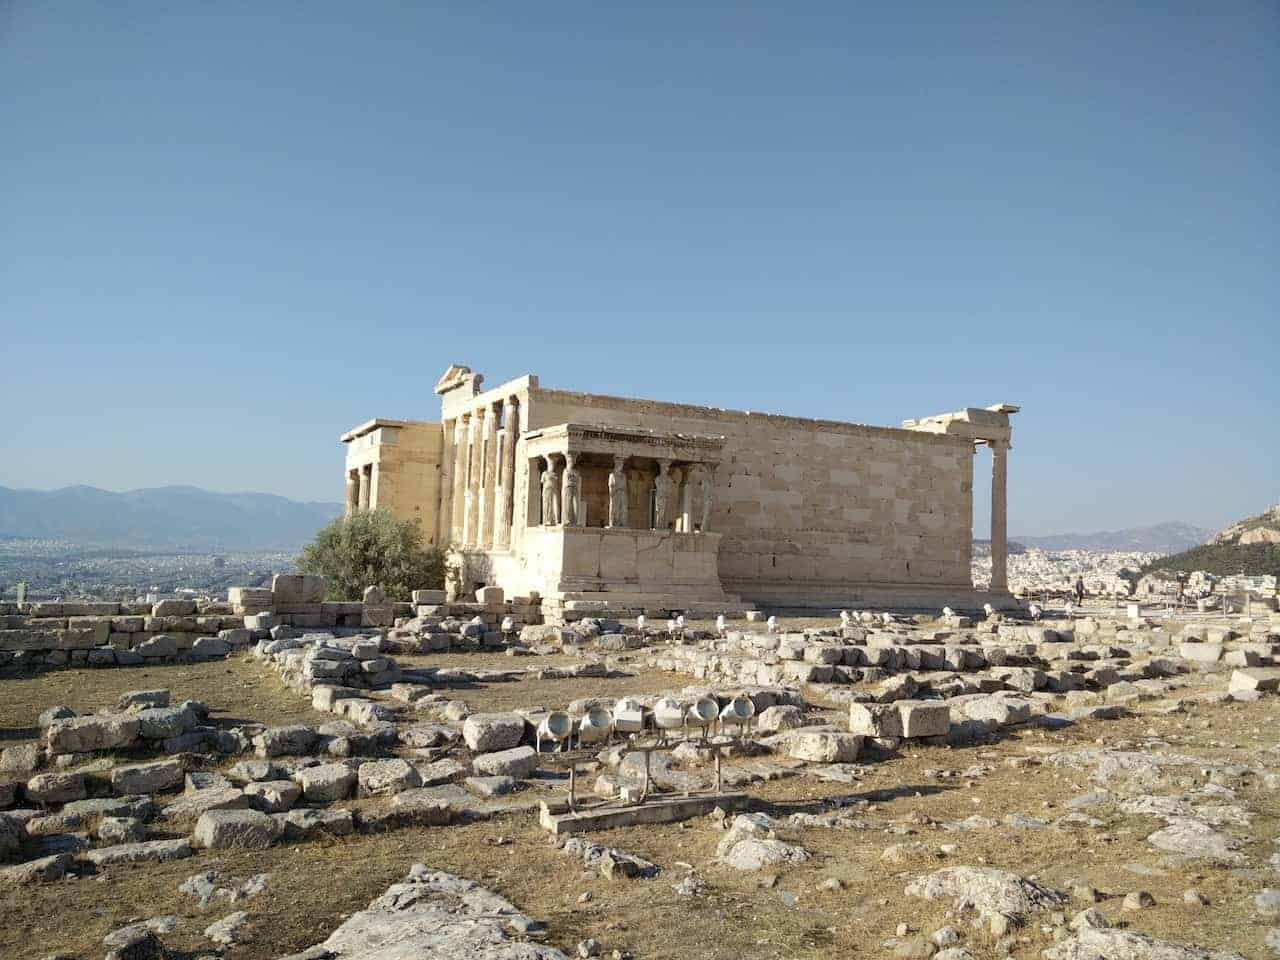 Athènes : le musée archéologique et l'Acropole photo 15